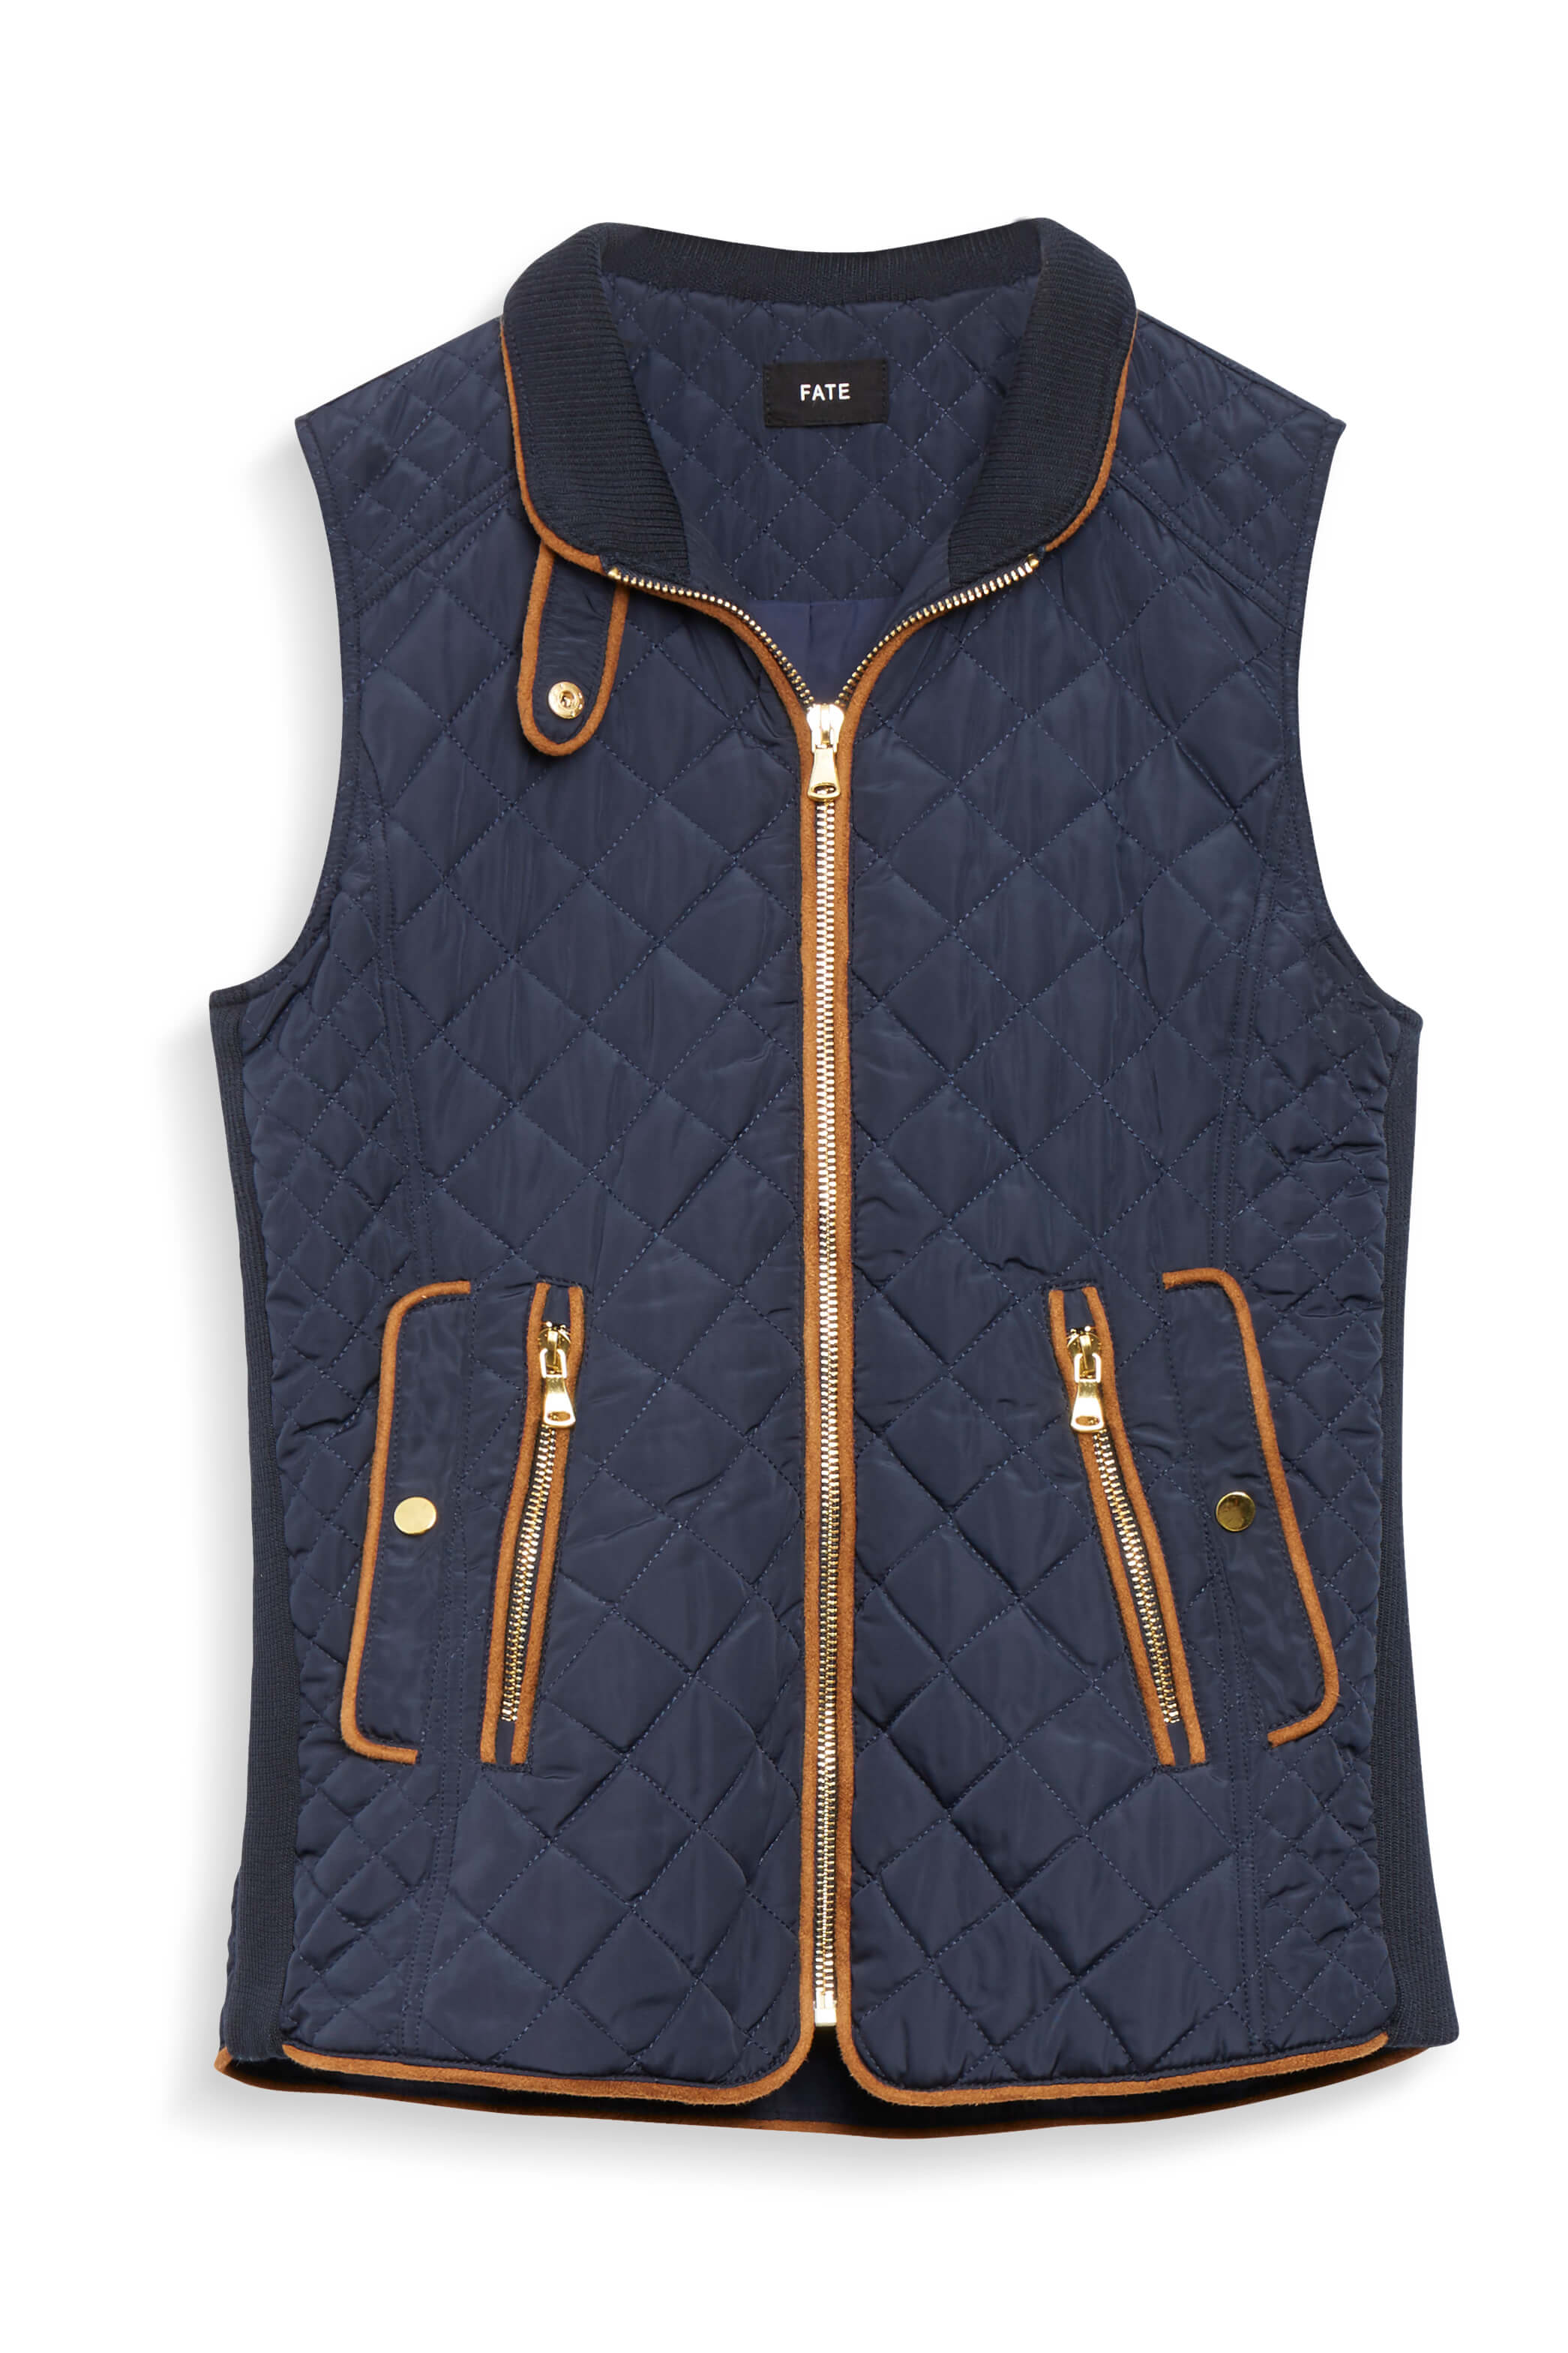 How To Wear A Vest